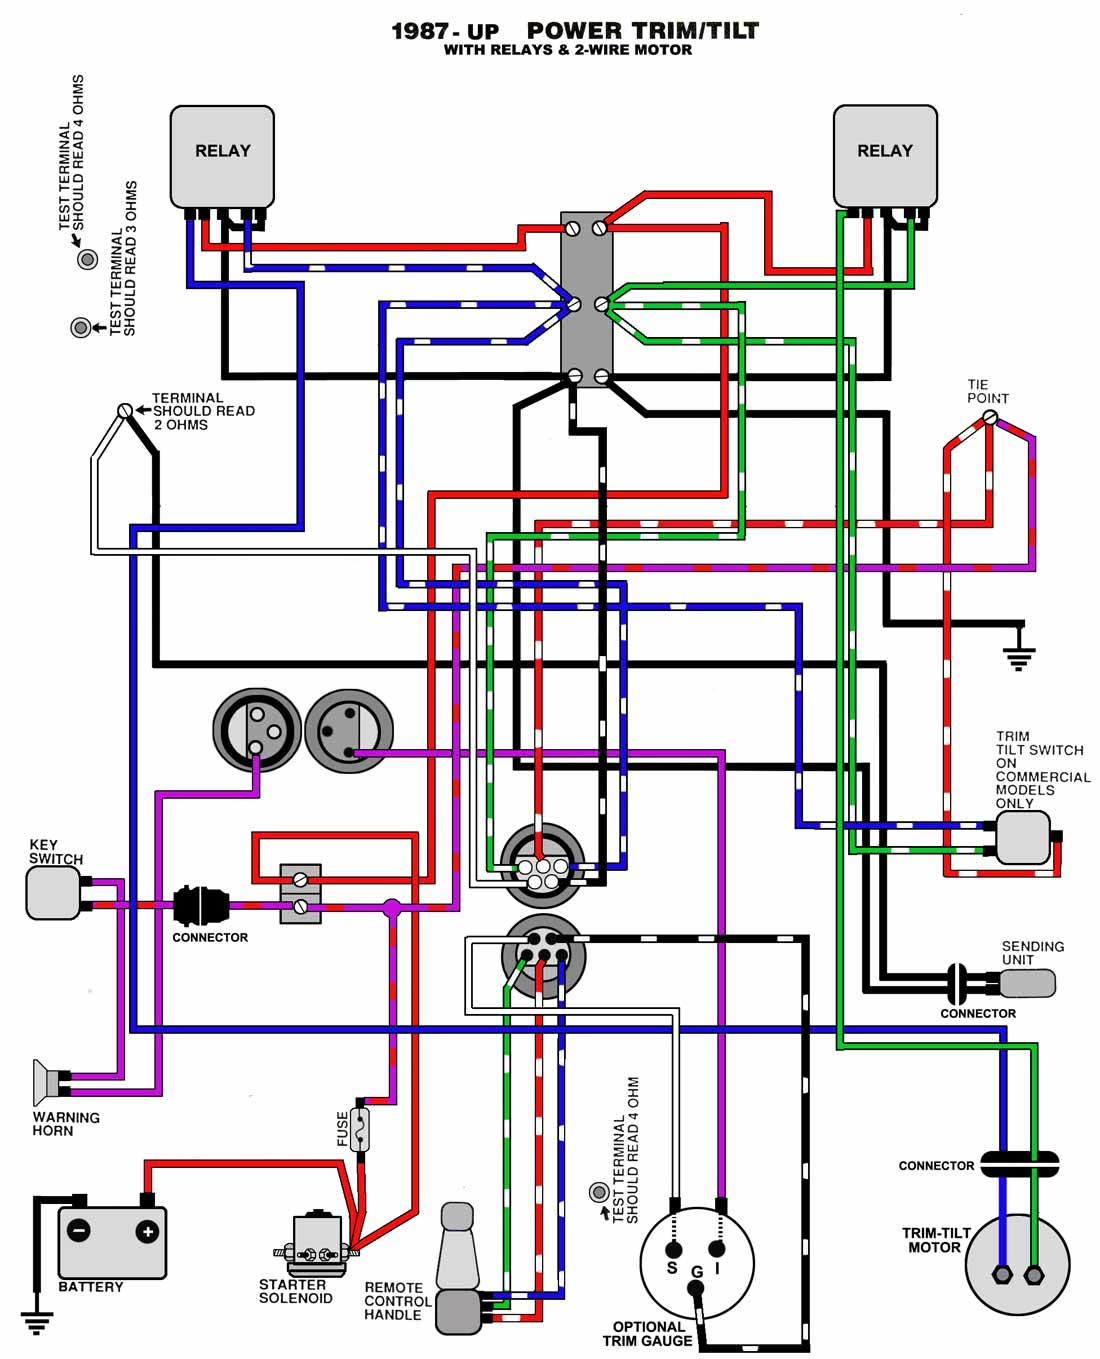 Mercruiser Wiring Diagram on mercruiser 350 wiring diagram, mercruiser 5.7 engine diagram, mercruiser wiring schematic, mercruiser starter wiring, mercruiser trim pump wiring, mercruiser 3.0 parts diagram, 4.3 mercruiser parts diagram, mercruiser 3 0 wiring, mercruiser outdrive wiring diagram, mercruiser 3 0lx block diagram, mercruiser 470 wiring diagram, mercruiser shift interrupter switch wiring, mercruiser 3.0 firing order diagram, mercruiser engine wiring diagram, mercruiser boat wiring, mercruiser trim wiring diagram, mercruiser 5.7 wiring-diagram, mercruiser electrical system wiring diagrams, mercruiser one wire alternator wiring, mercruiser diesel wiring diagram,